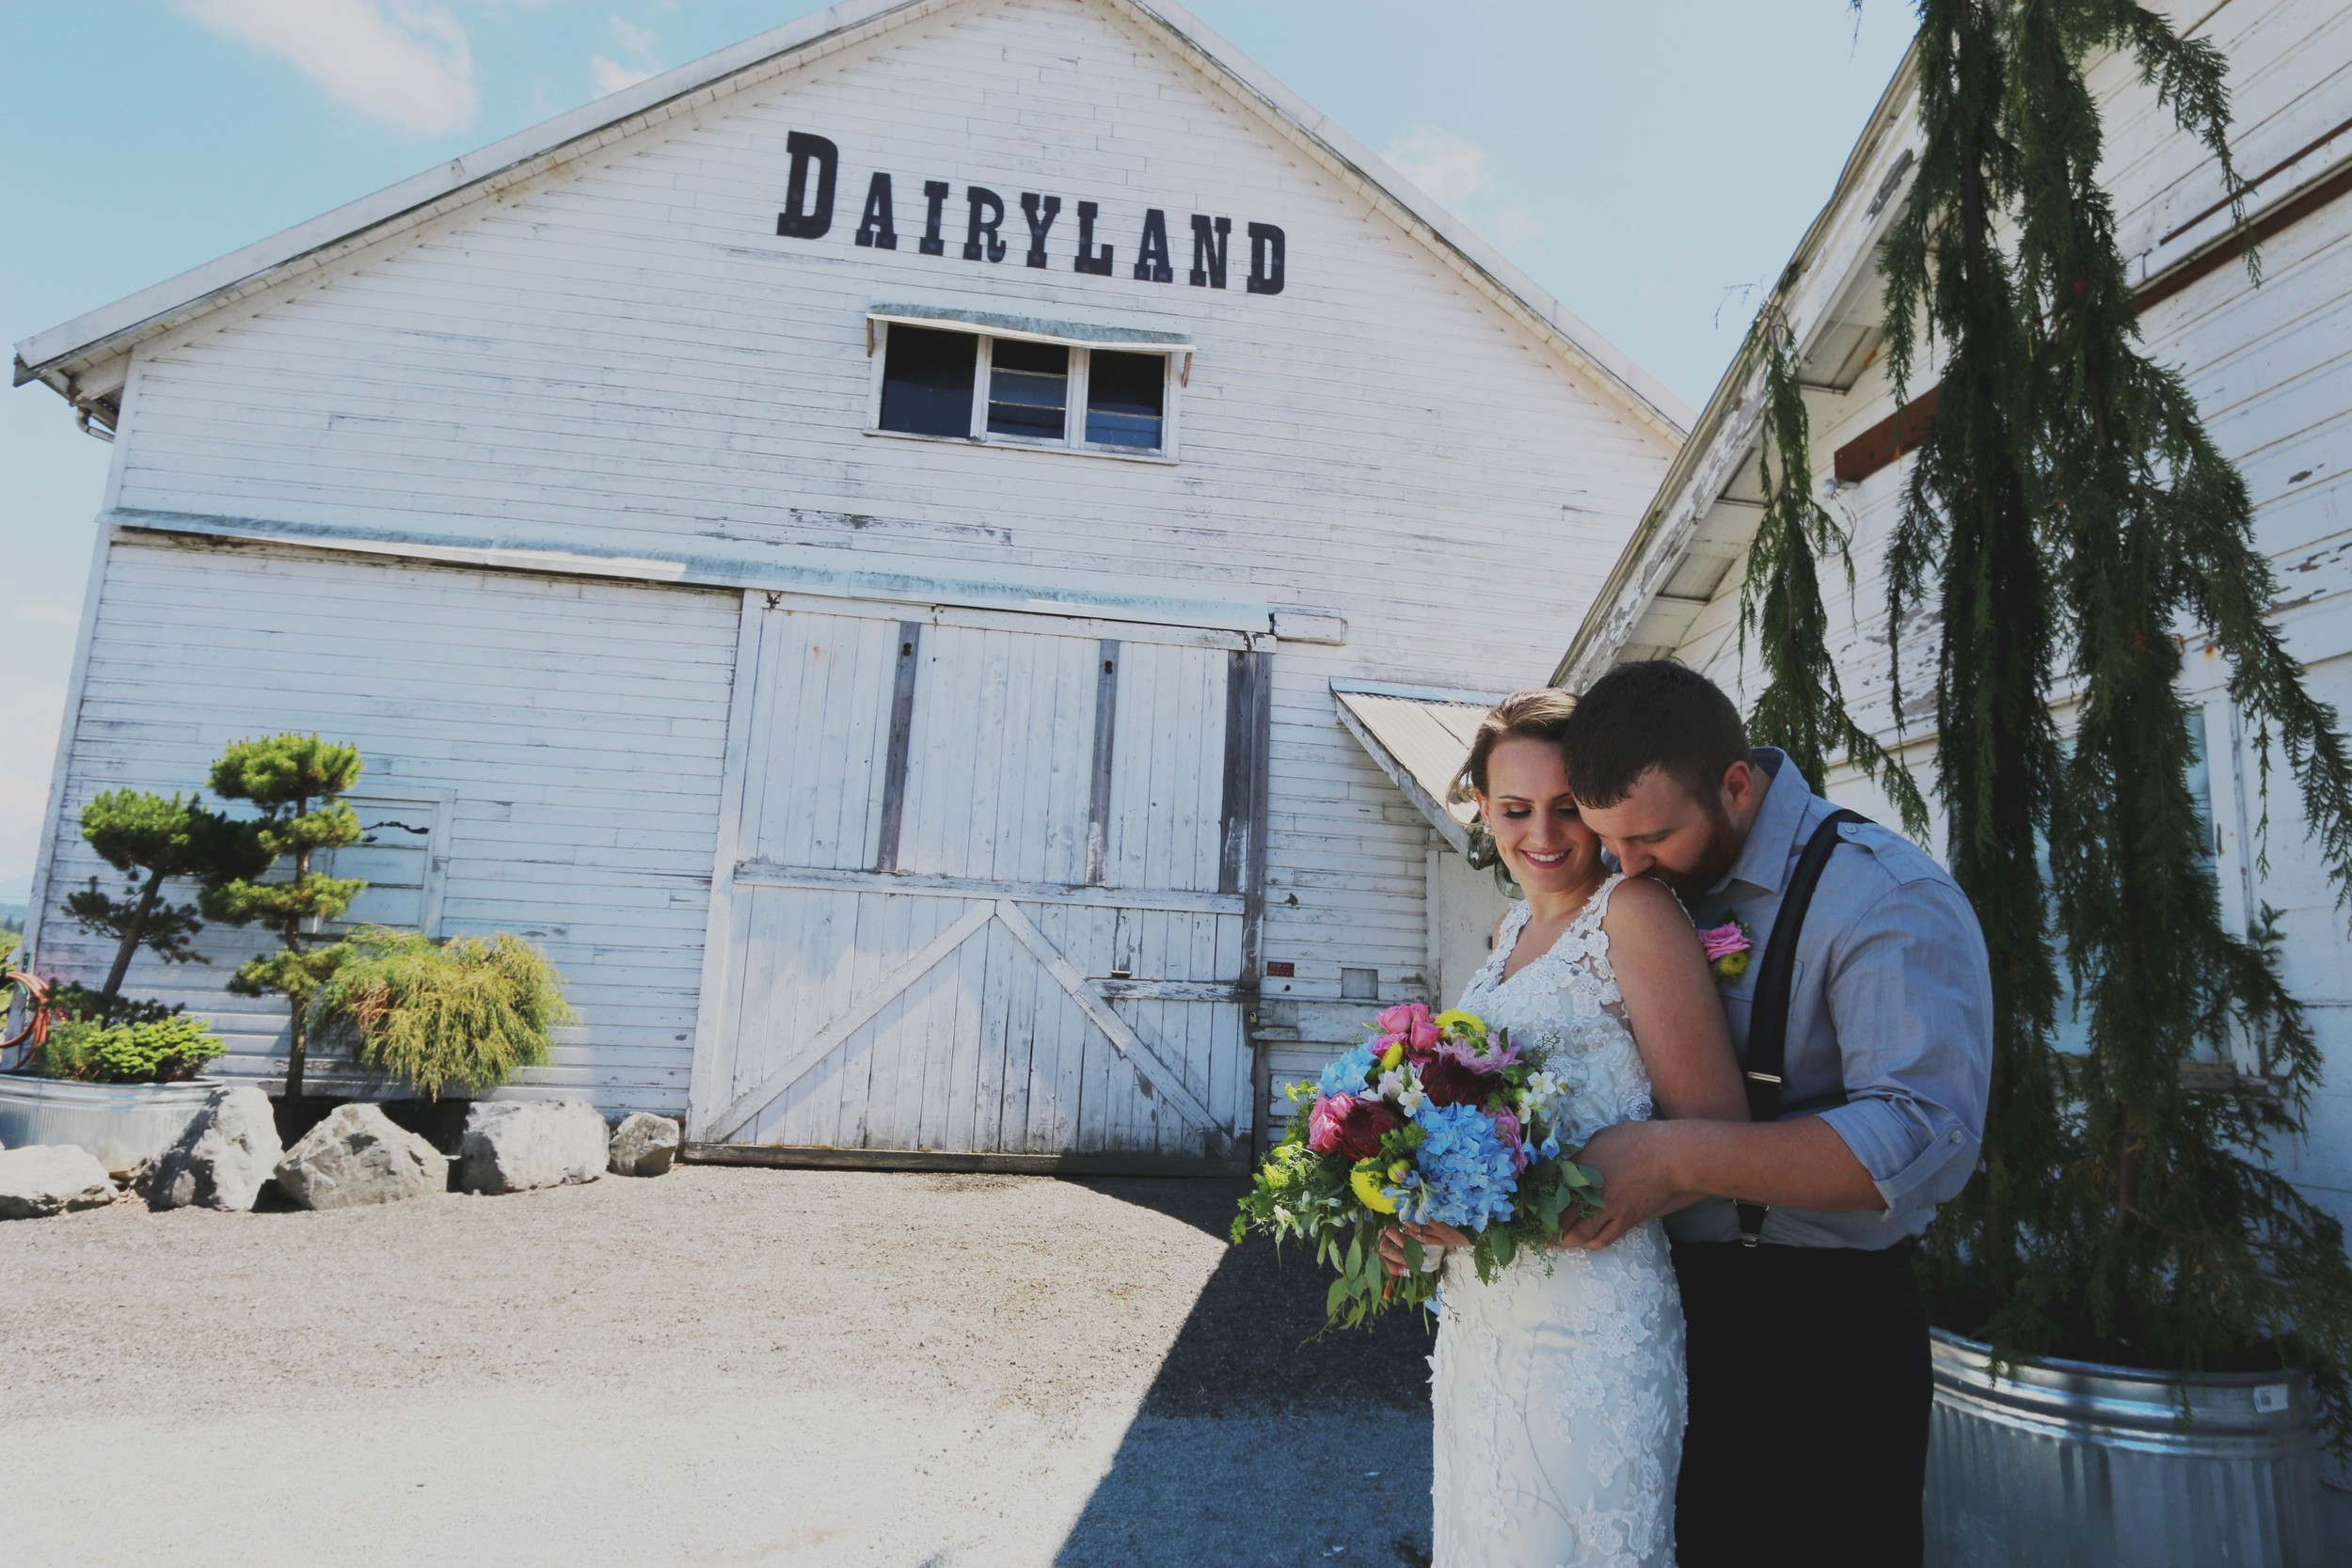 dairyland wedding venue